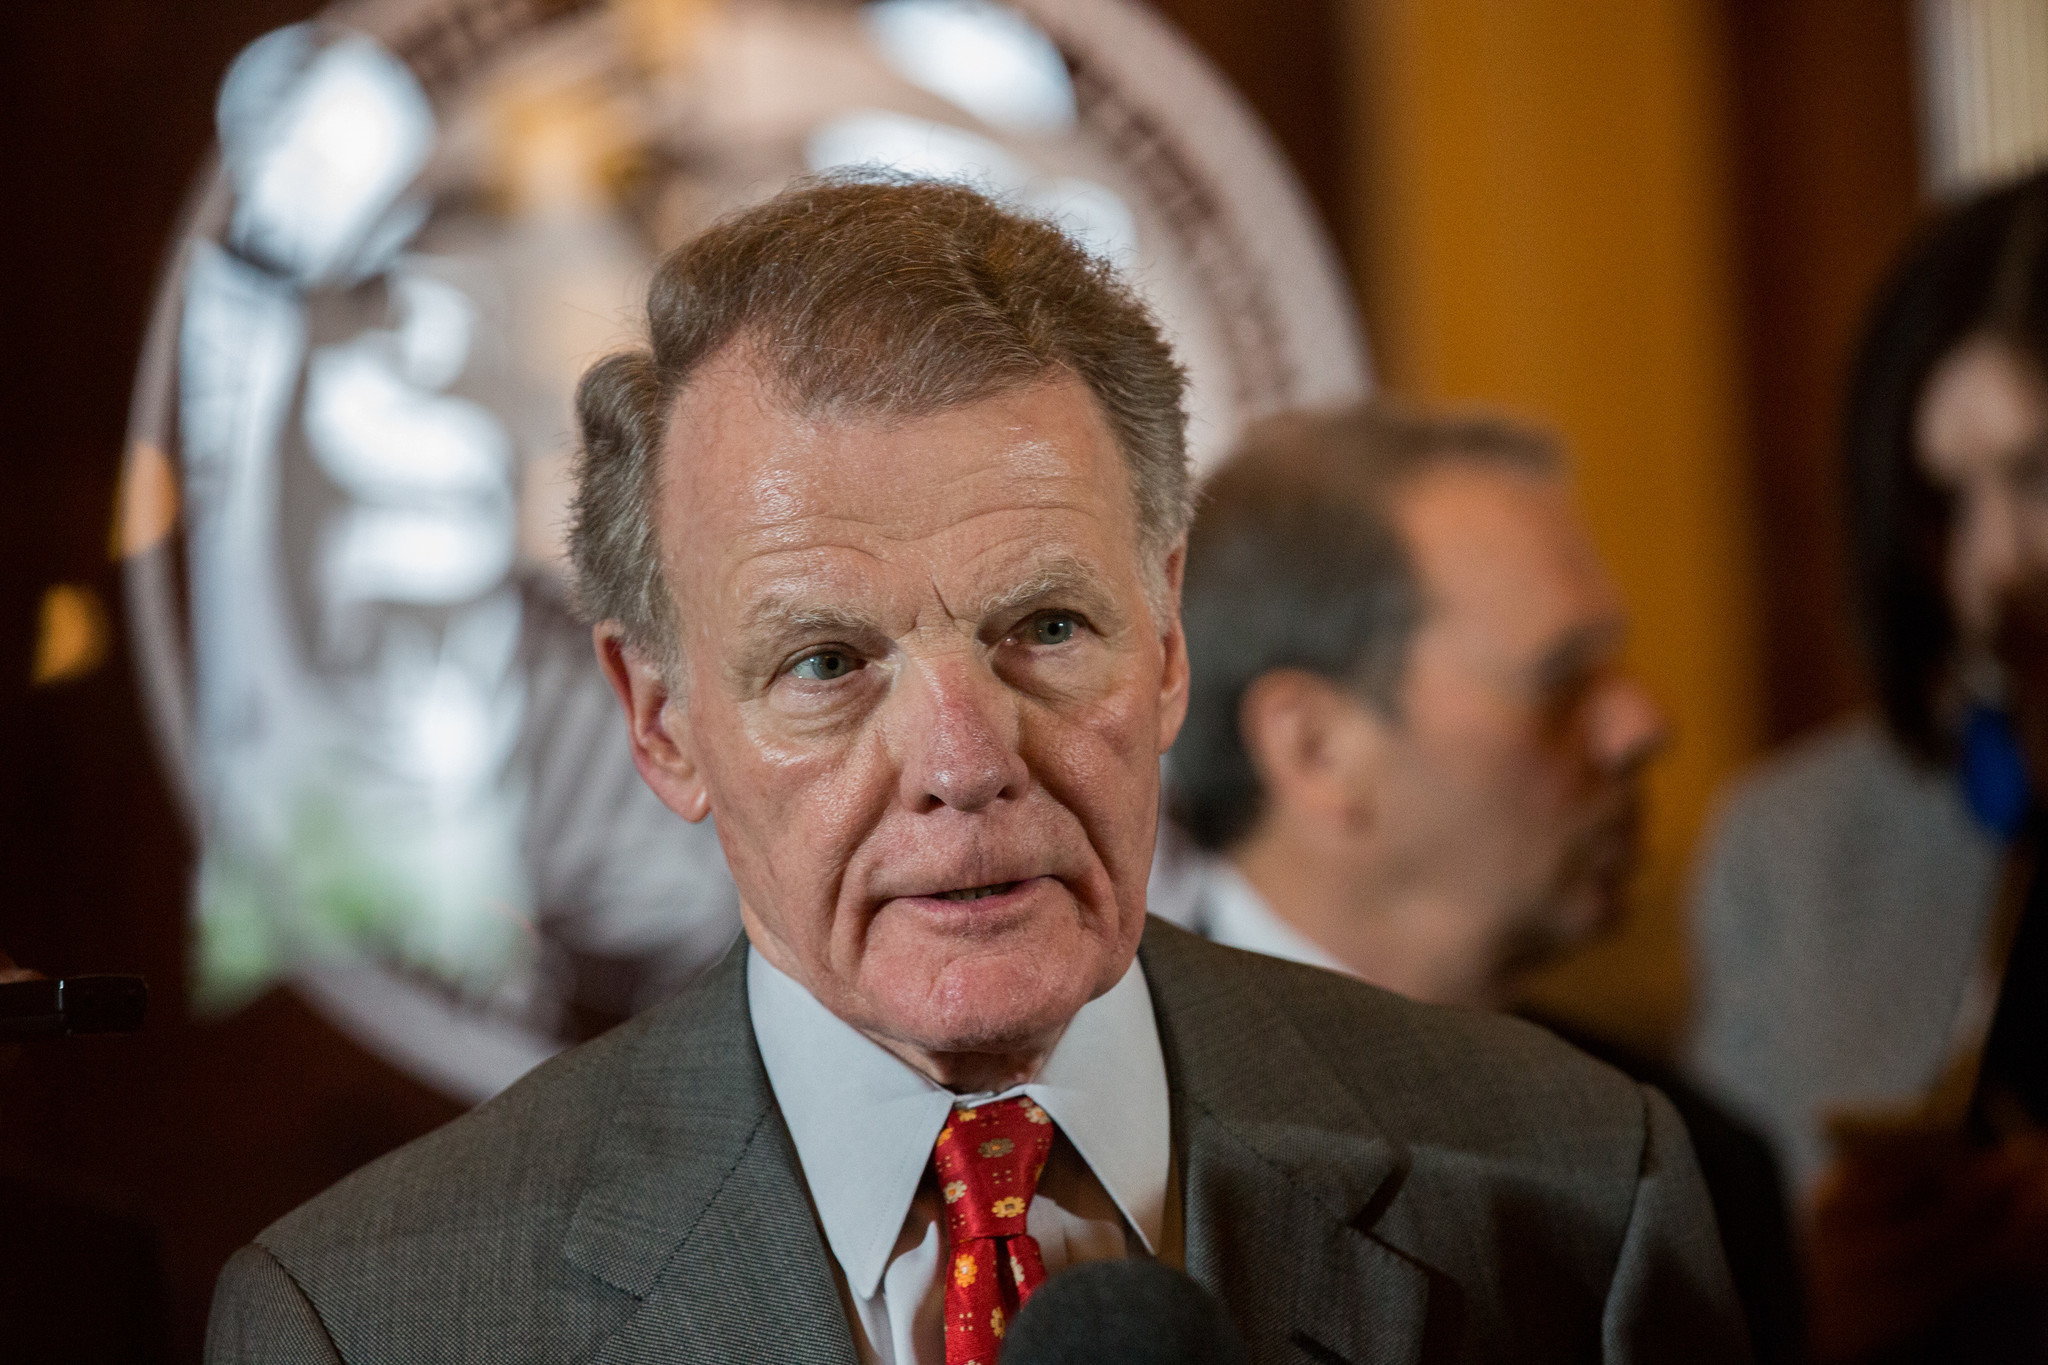 Rauner Republicans face challenges turning Madigan attacks into results